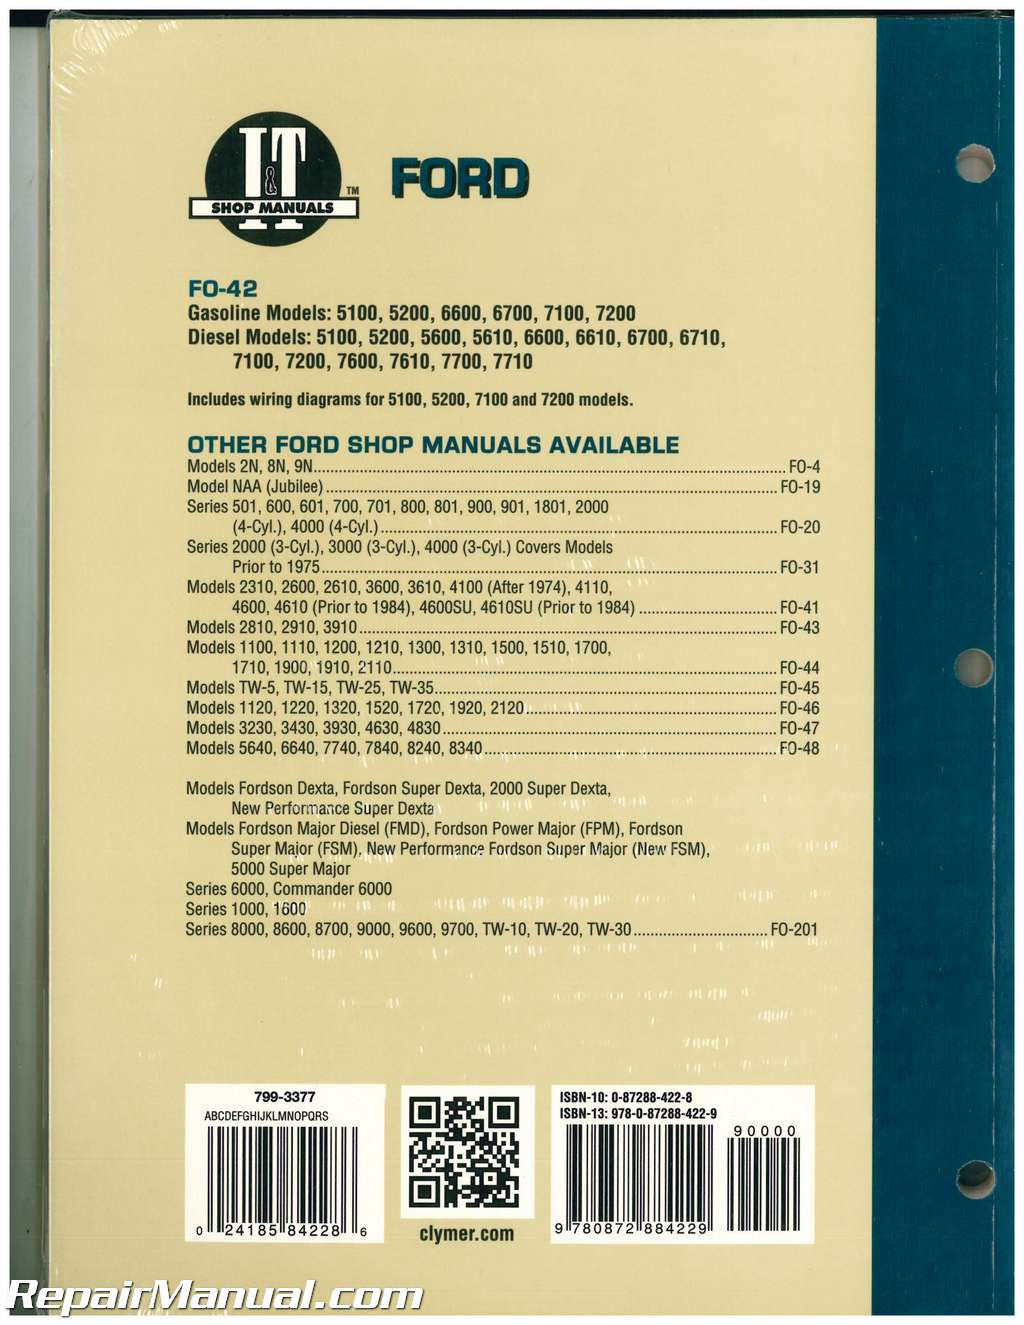 ford new holland 5100 5200 5600 5610 6600 6610 6700 6710 7100 7200 rh repairmanual com Ford Windstar Repair Manual Ford Focus Haynes Repair Manual